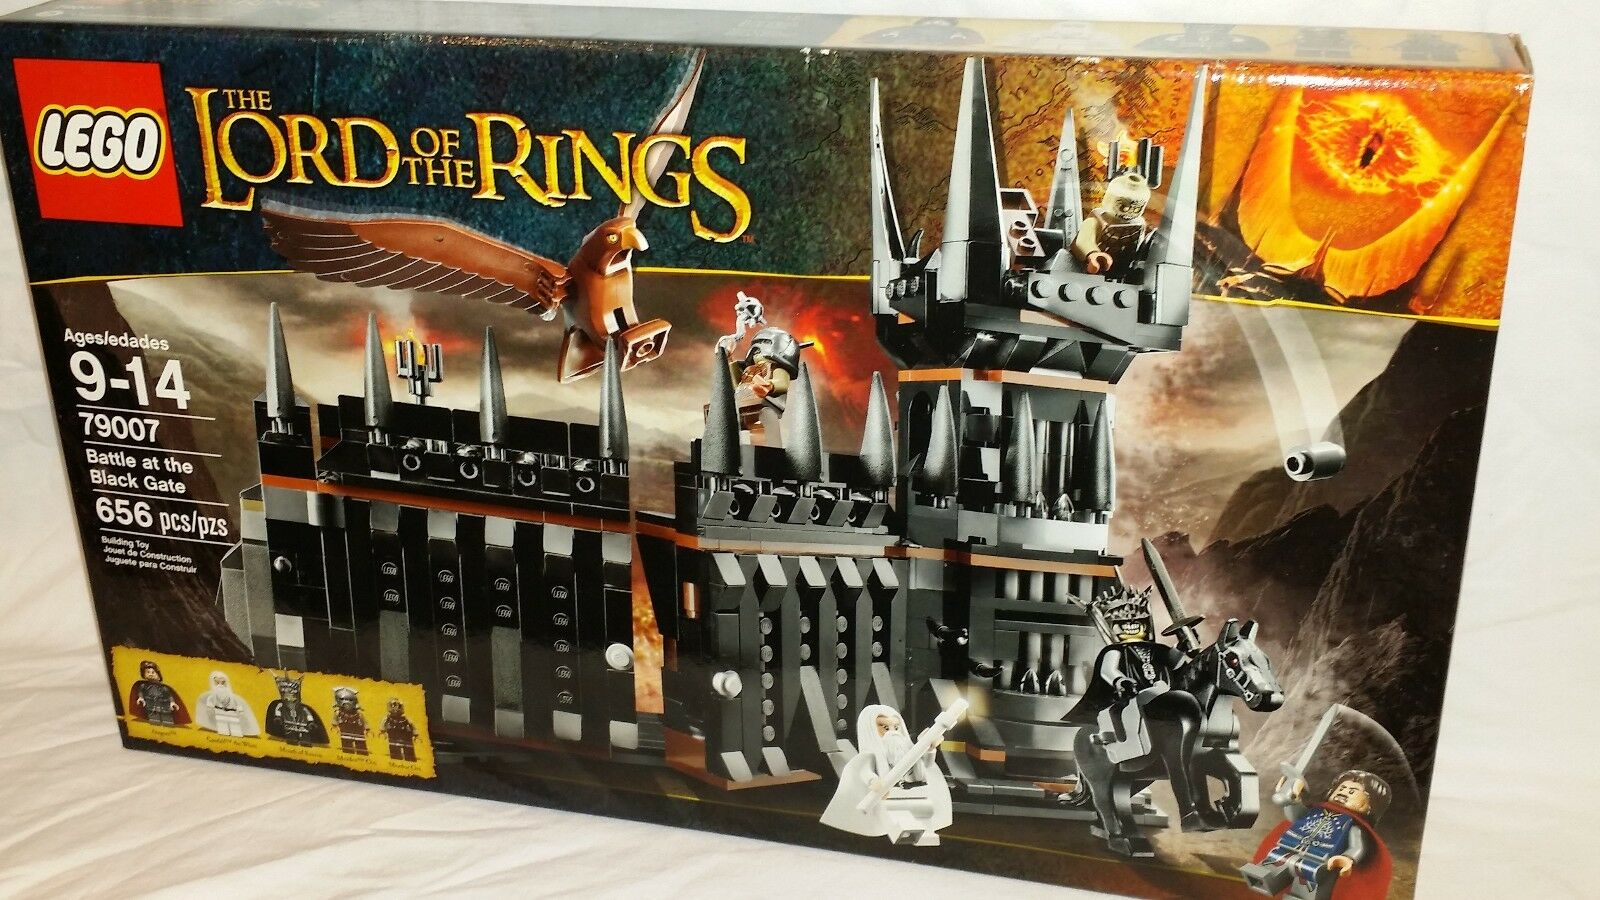 SEALED 79007 LEGO Lord of the Rings BATTLE AT THE schwarz GATE 656 pc set RETIrot